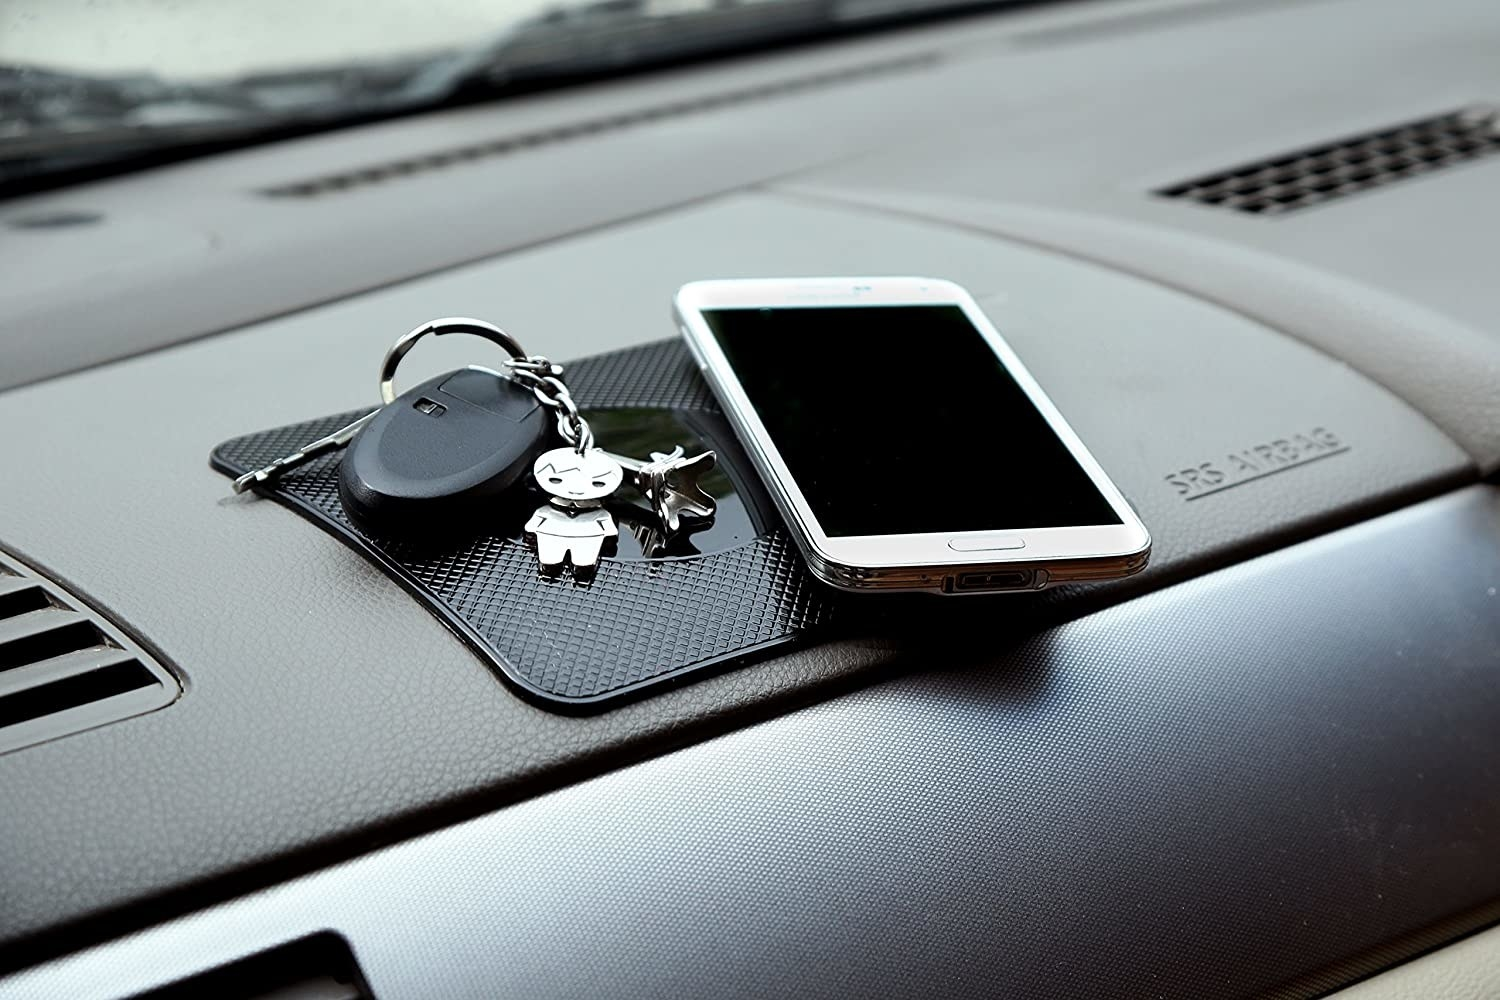 a phone and pair of keys on the mat